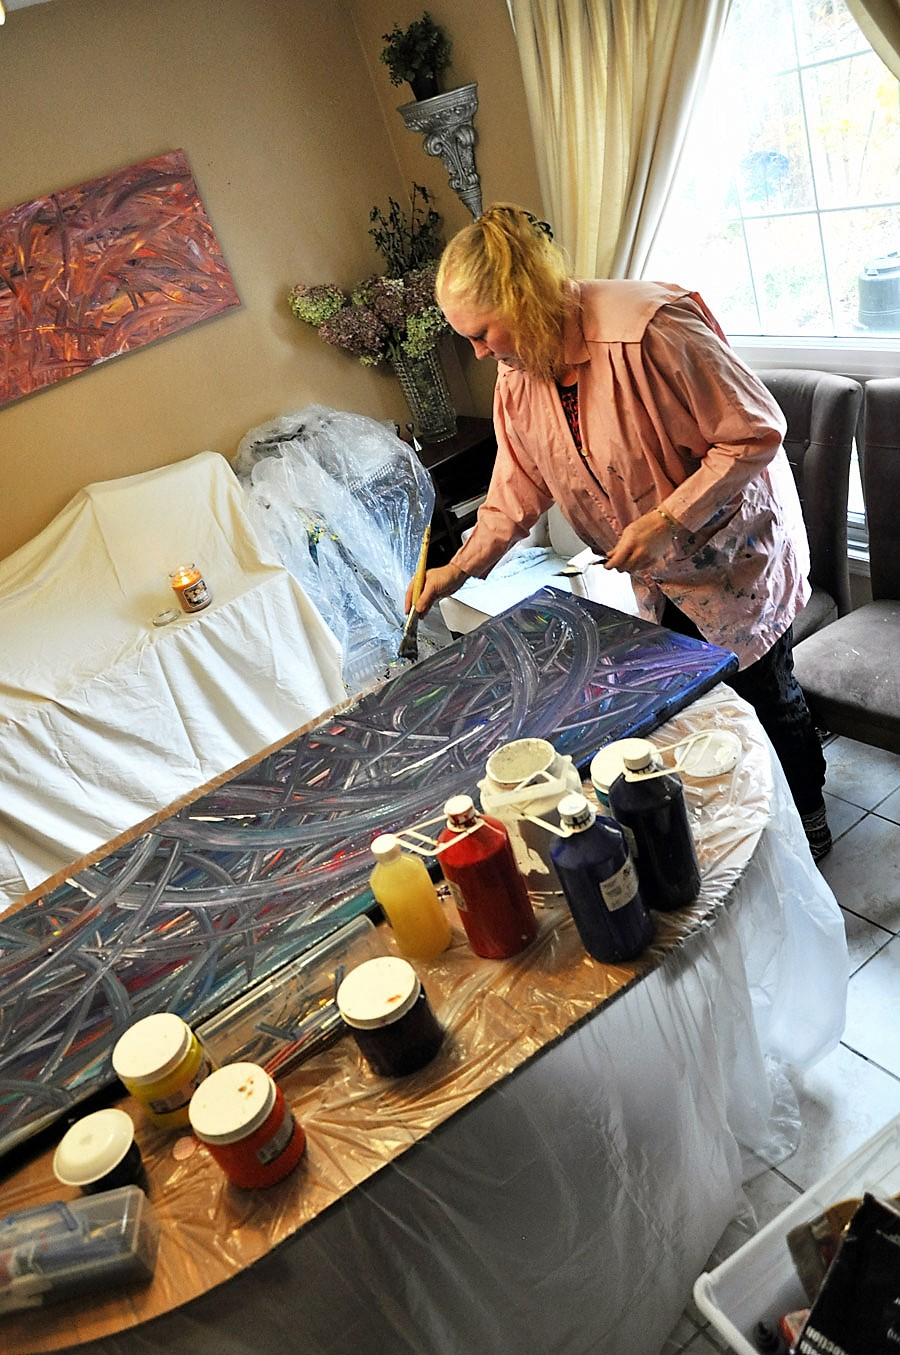 Woman painting on a large canvas in her studio